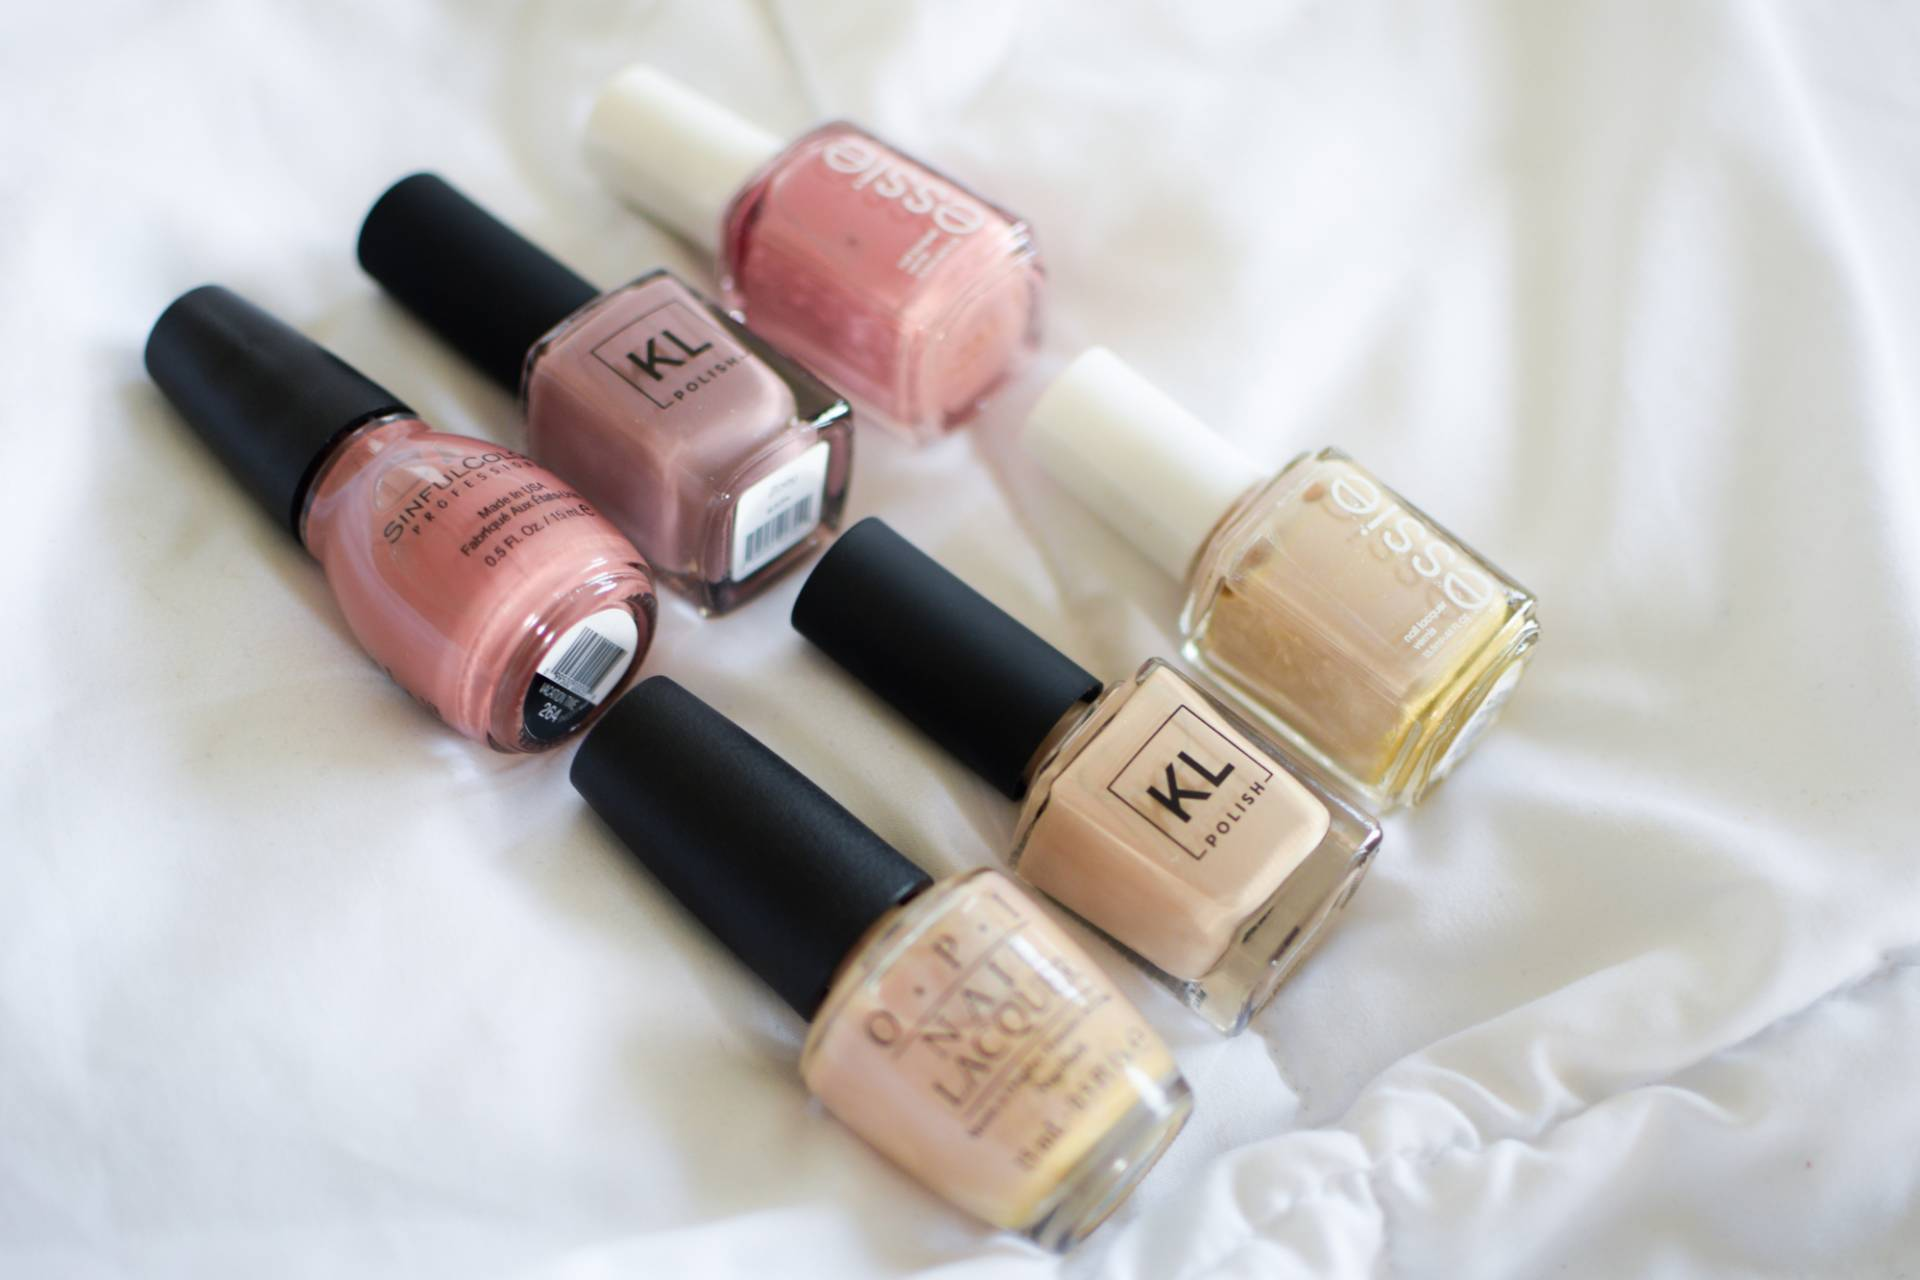 KL Polish Nail Polish Review Swatches and Dupes-1 | Venti Fashion